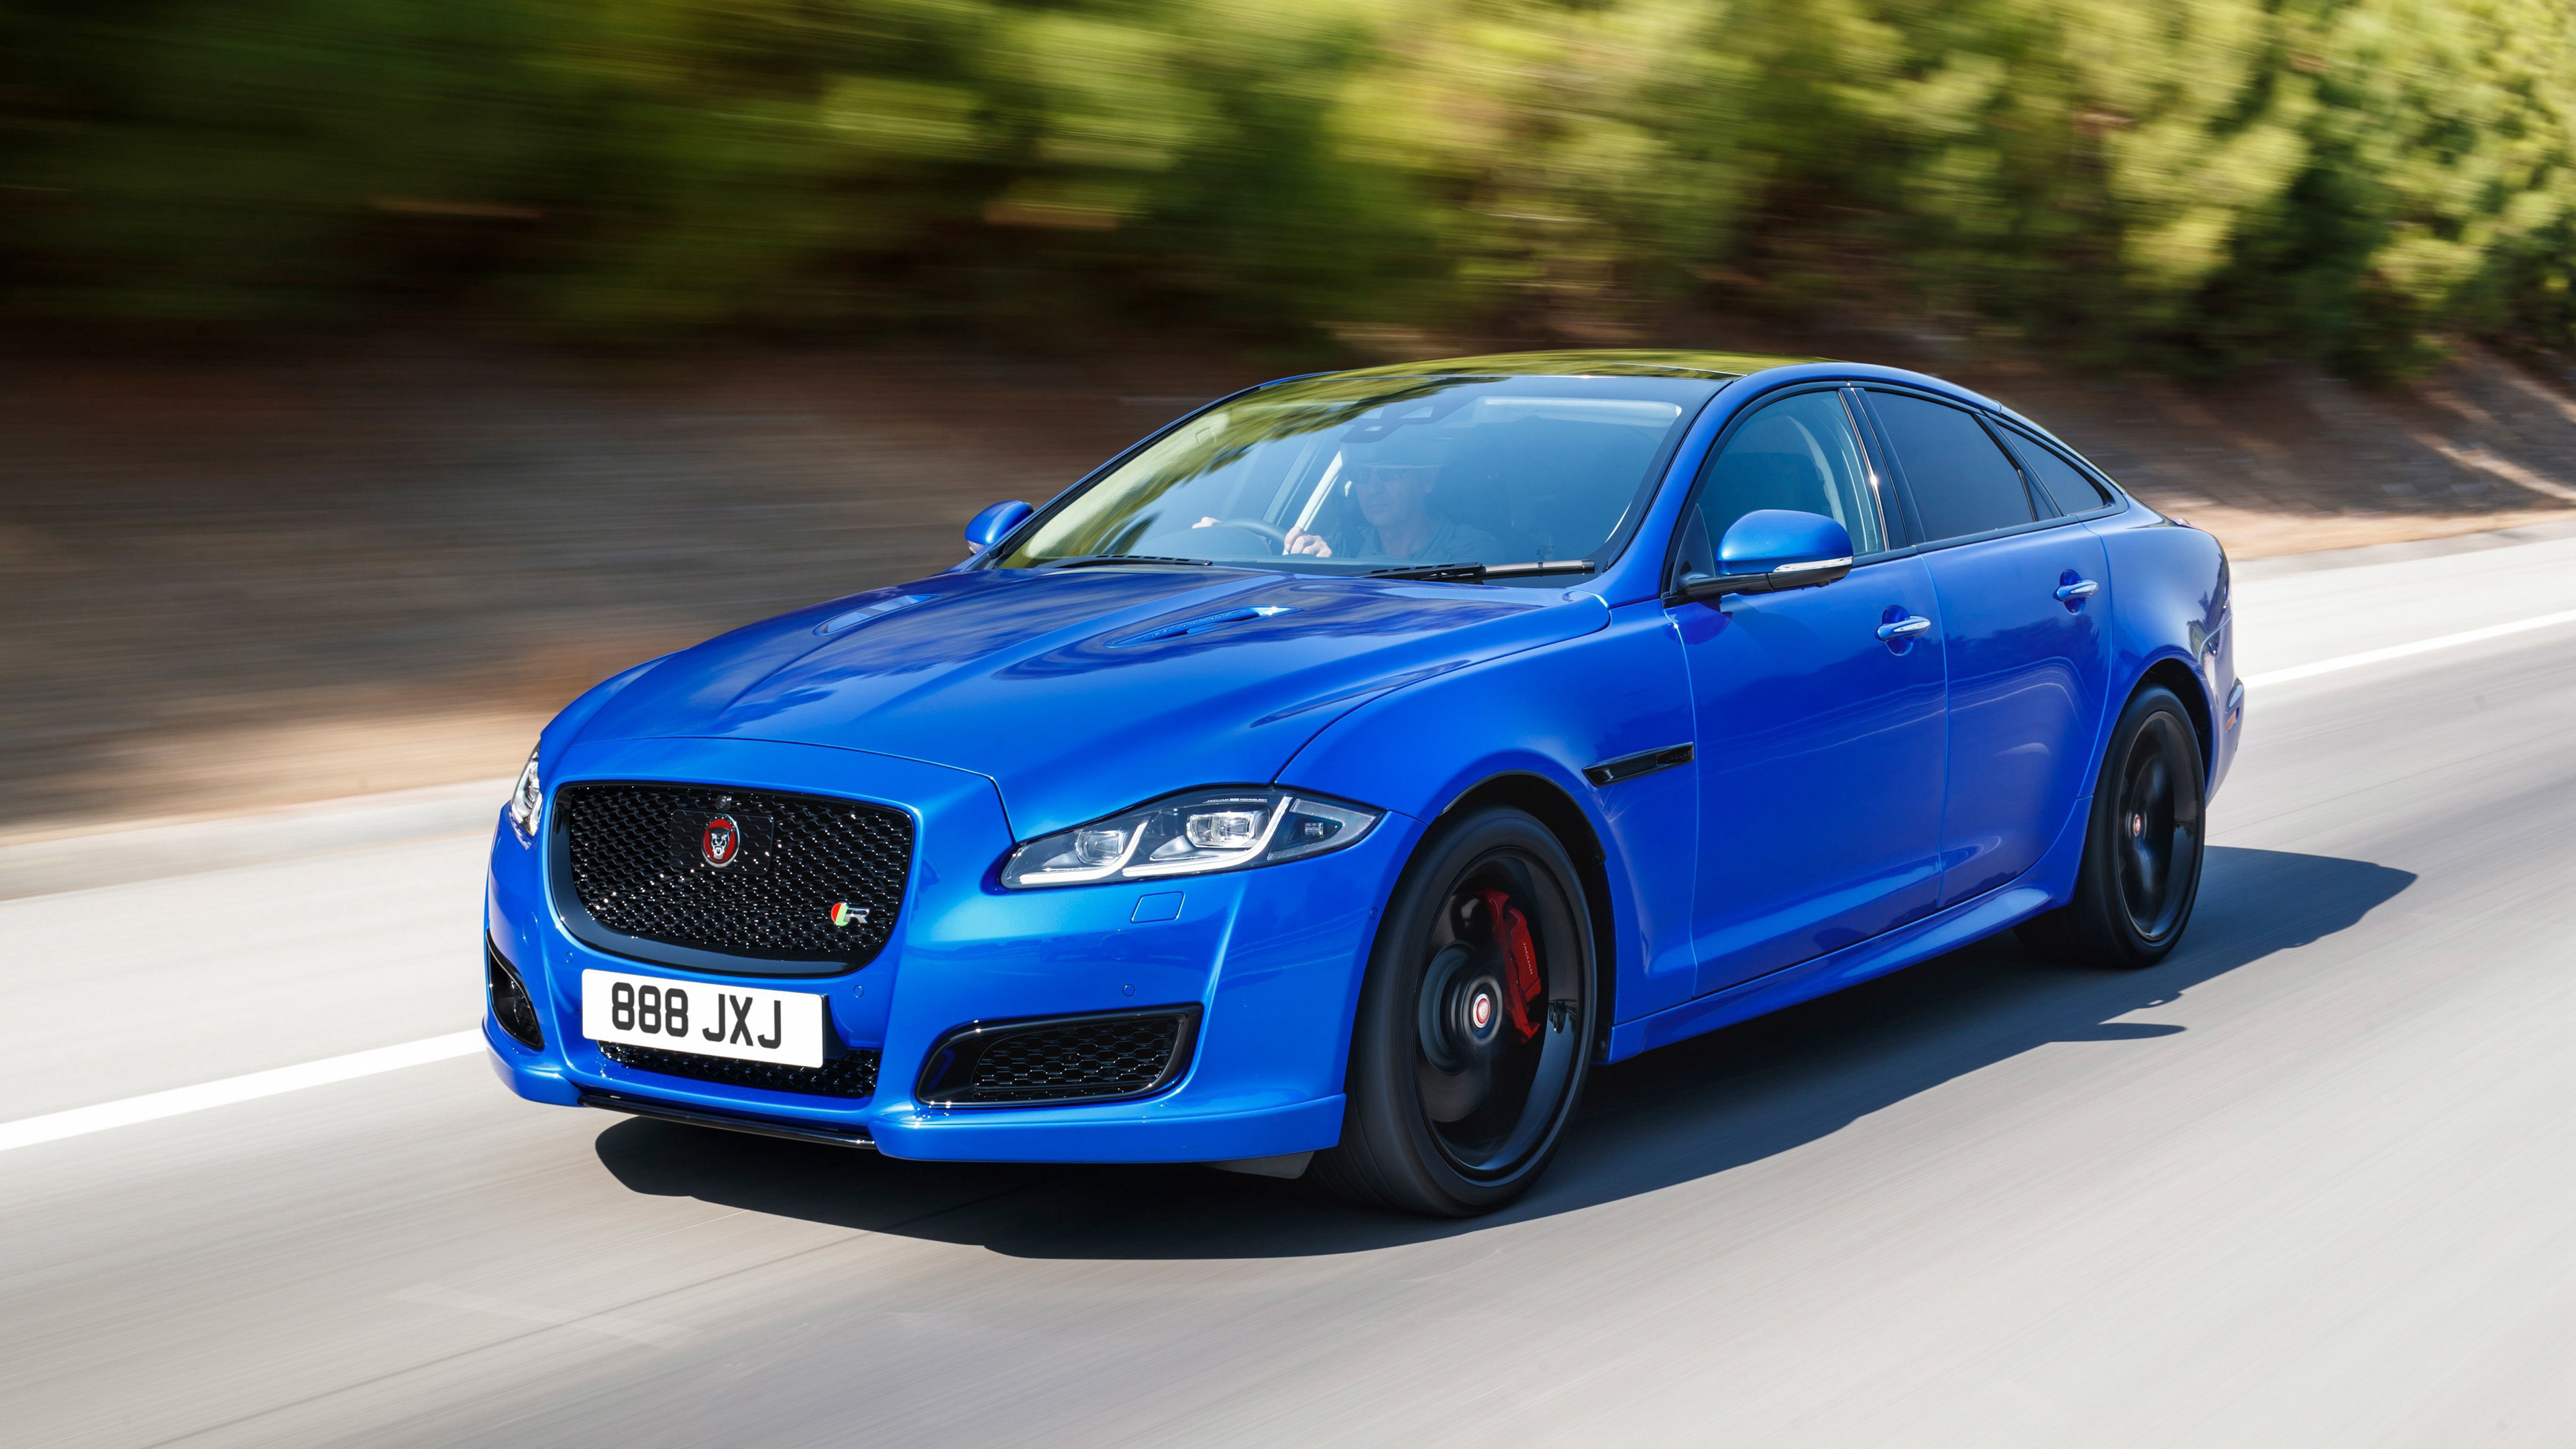 jaguar xjr575 2017 4k 1539107422 - Jaguar XJR575 2017 4k - jaguar xjr 575 wallpapers, jaguar xj wallpapers, jaguar wallpapers, hd-wallpapers, cars wallpapers, 4k-wallpapers, 2017 cars wallpapers